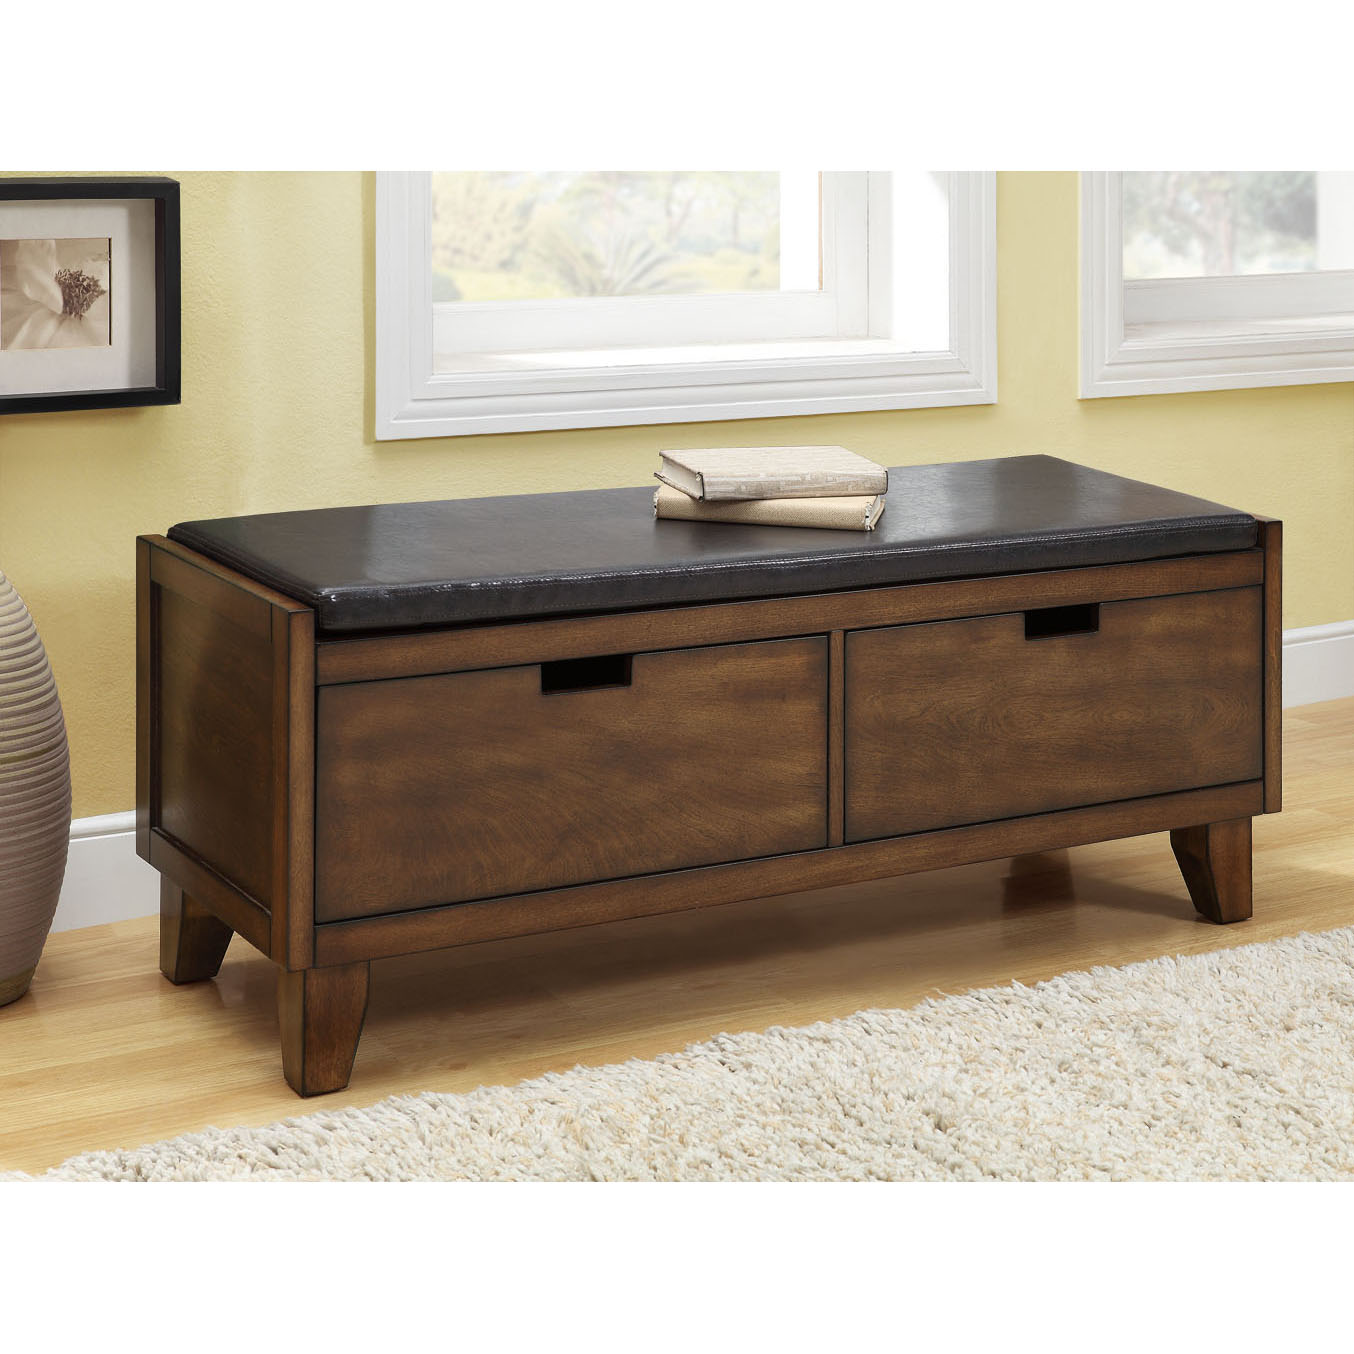 Dark Walnut Solid Wood Bench With Drawers 14349456